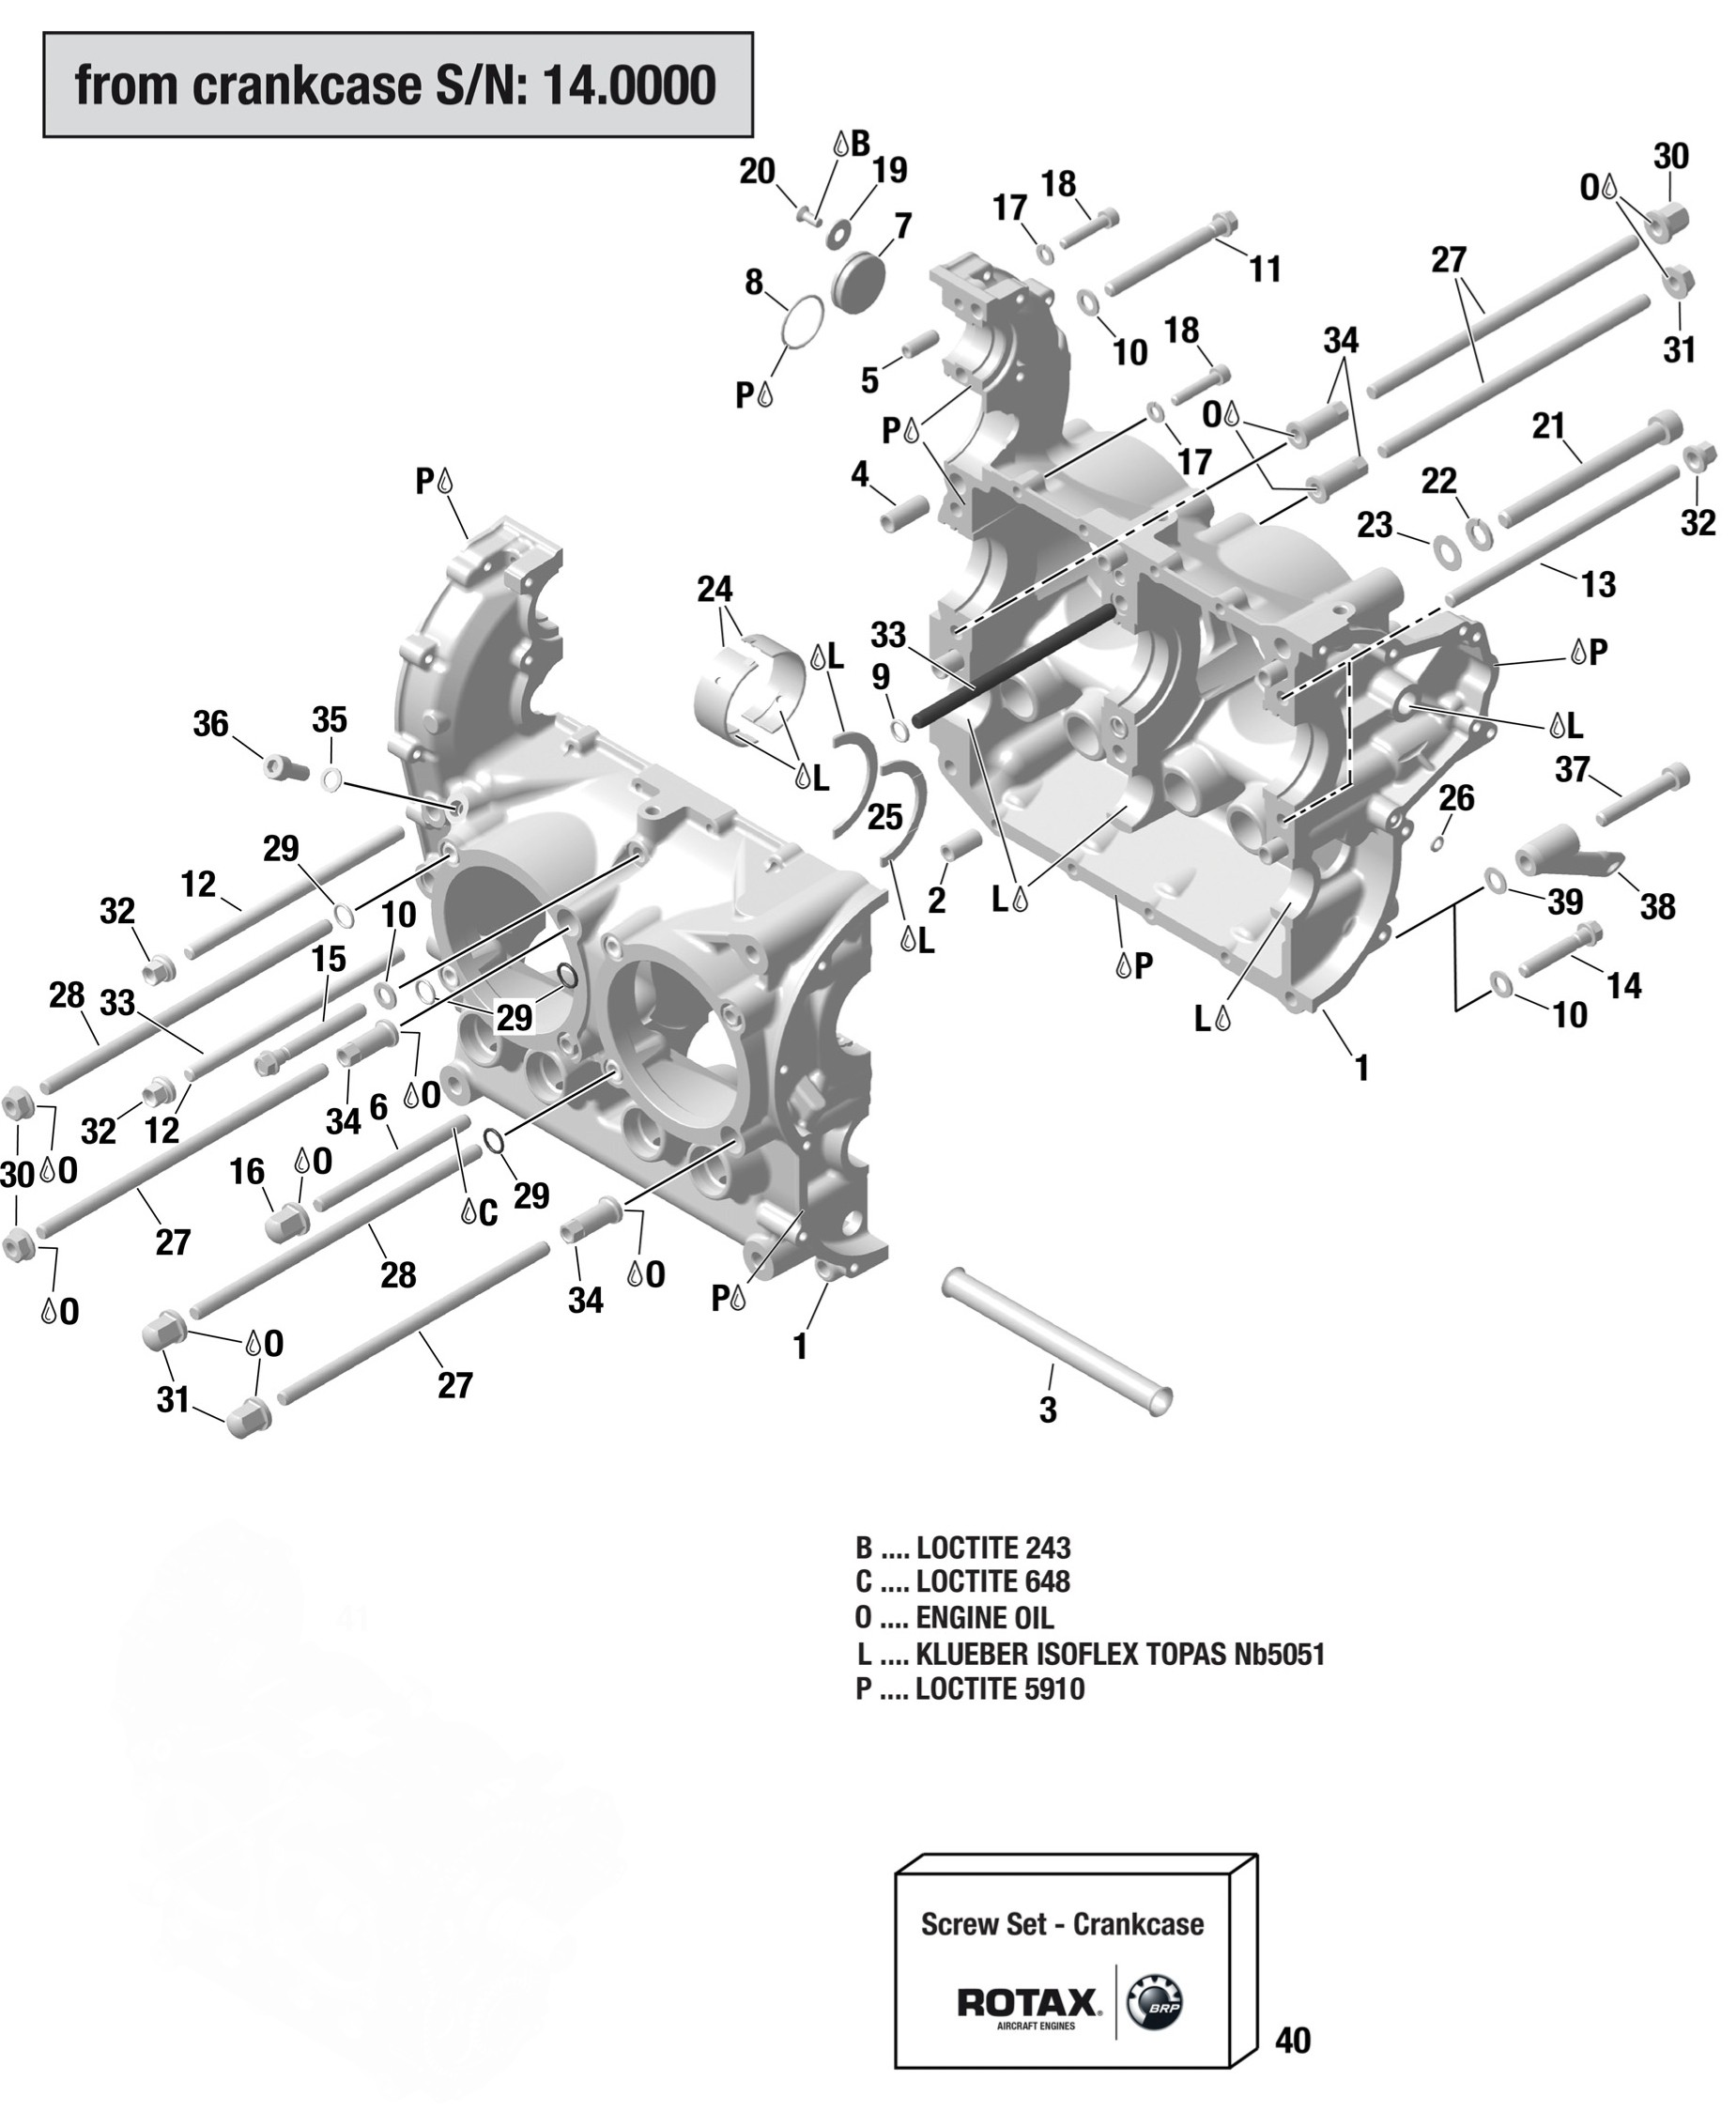 912 Amp 914 Crankcase From S N 14